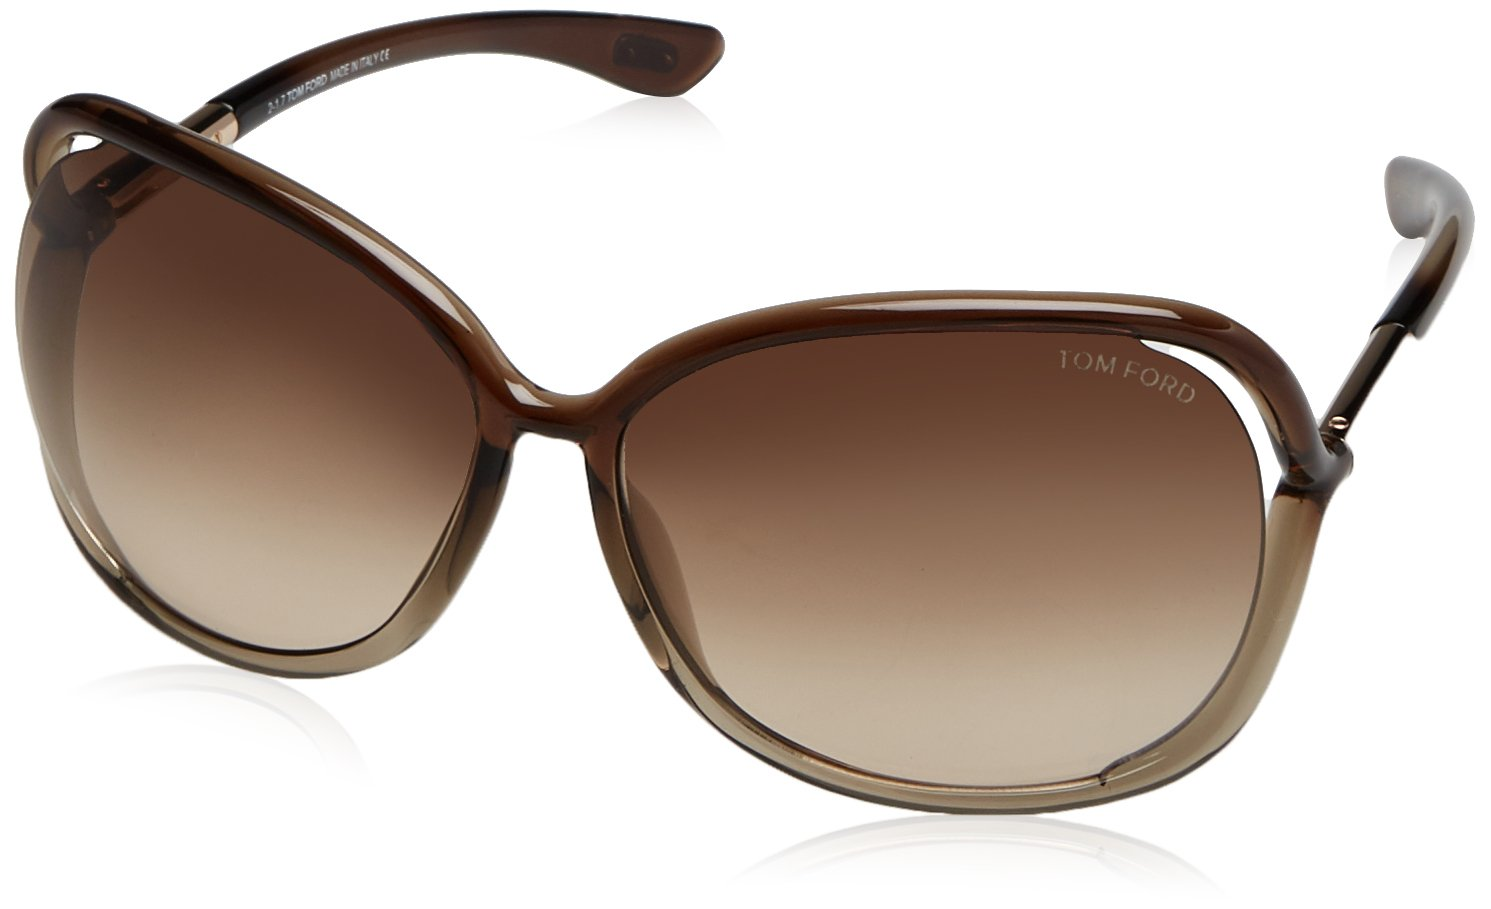 Tom Ford Raquel FT0076 Sunglasses-38F Bronze (Gradient Brown Lens)-63mm by Tom Ford